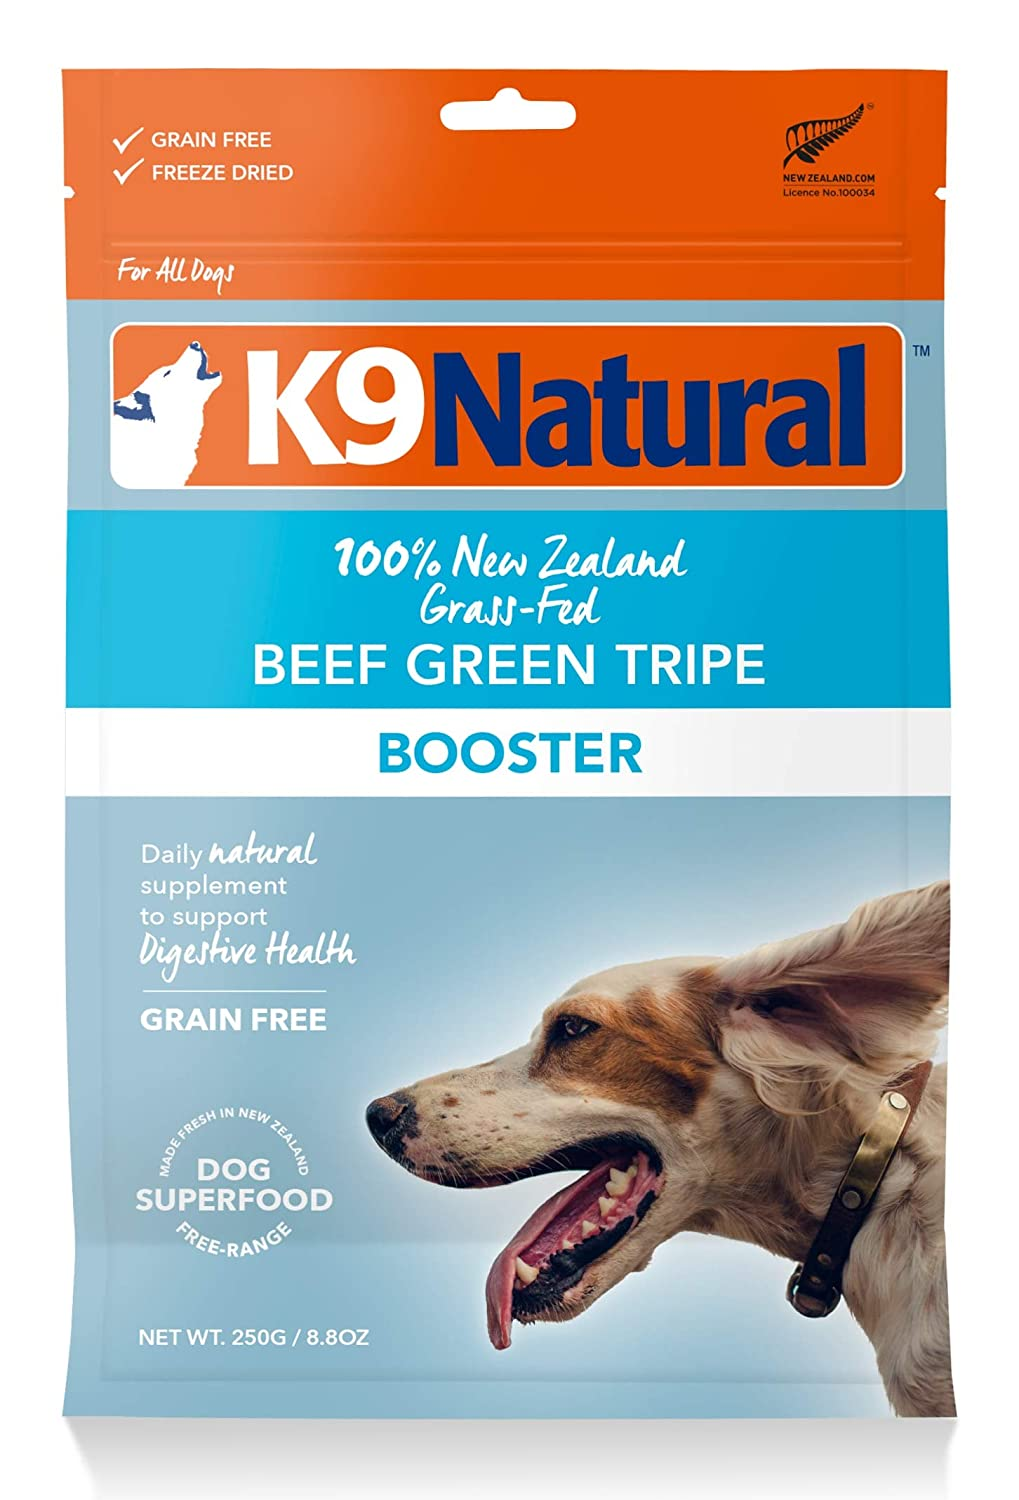 K9 Natural Freeze Dried Dog Food Topper by Perfect Grain Free, Healthy, Hypoallergenic Limited Ingredients for All Dog'S Raw, Freeze Dried Mixer (Beef, 8.8Oz)